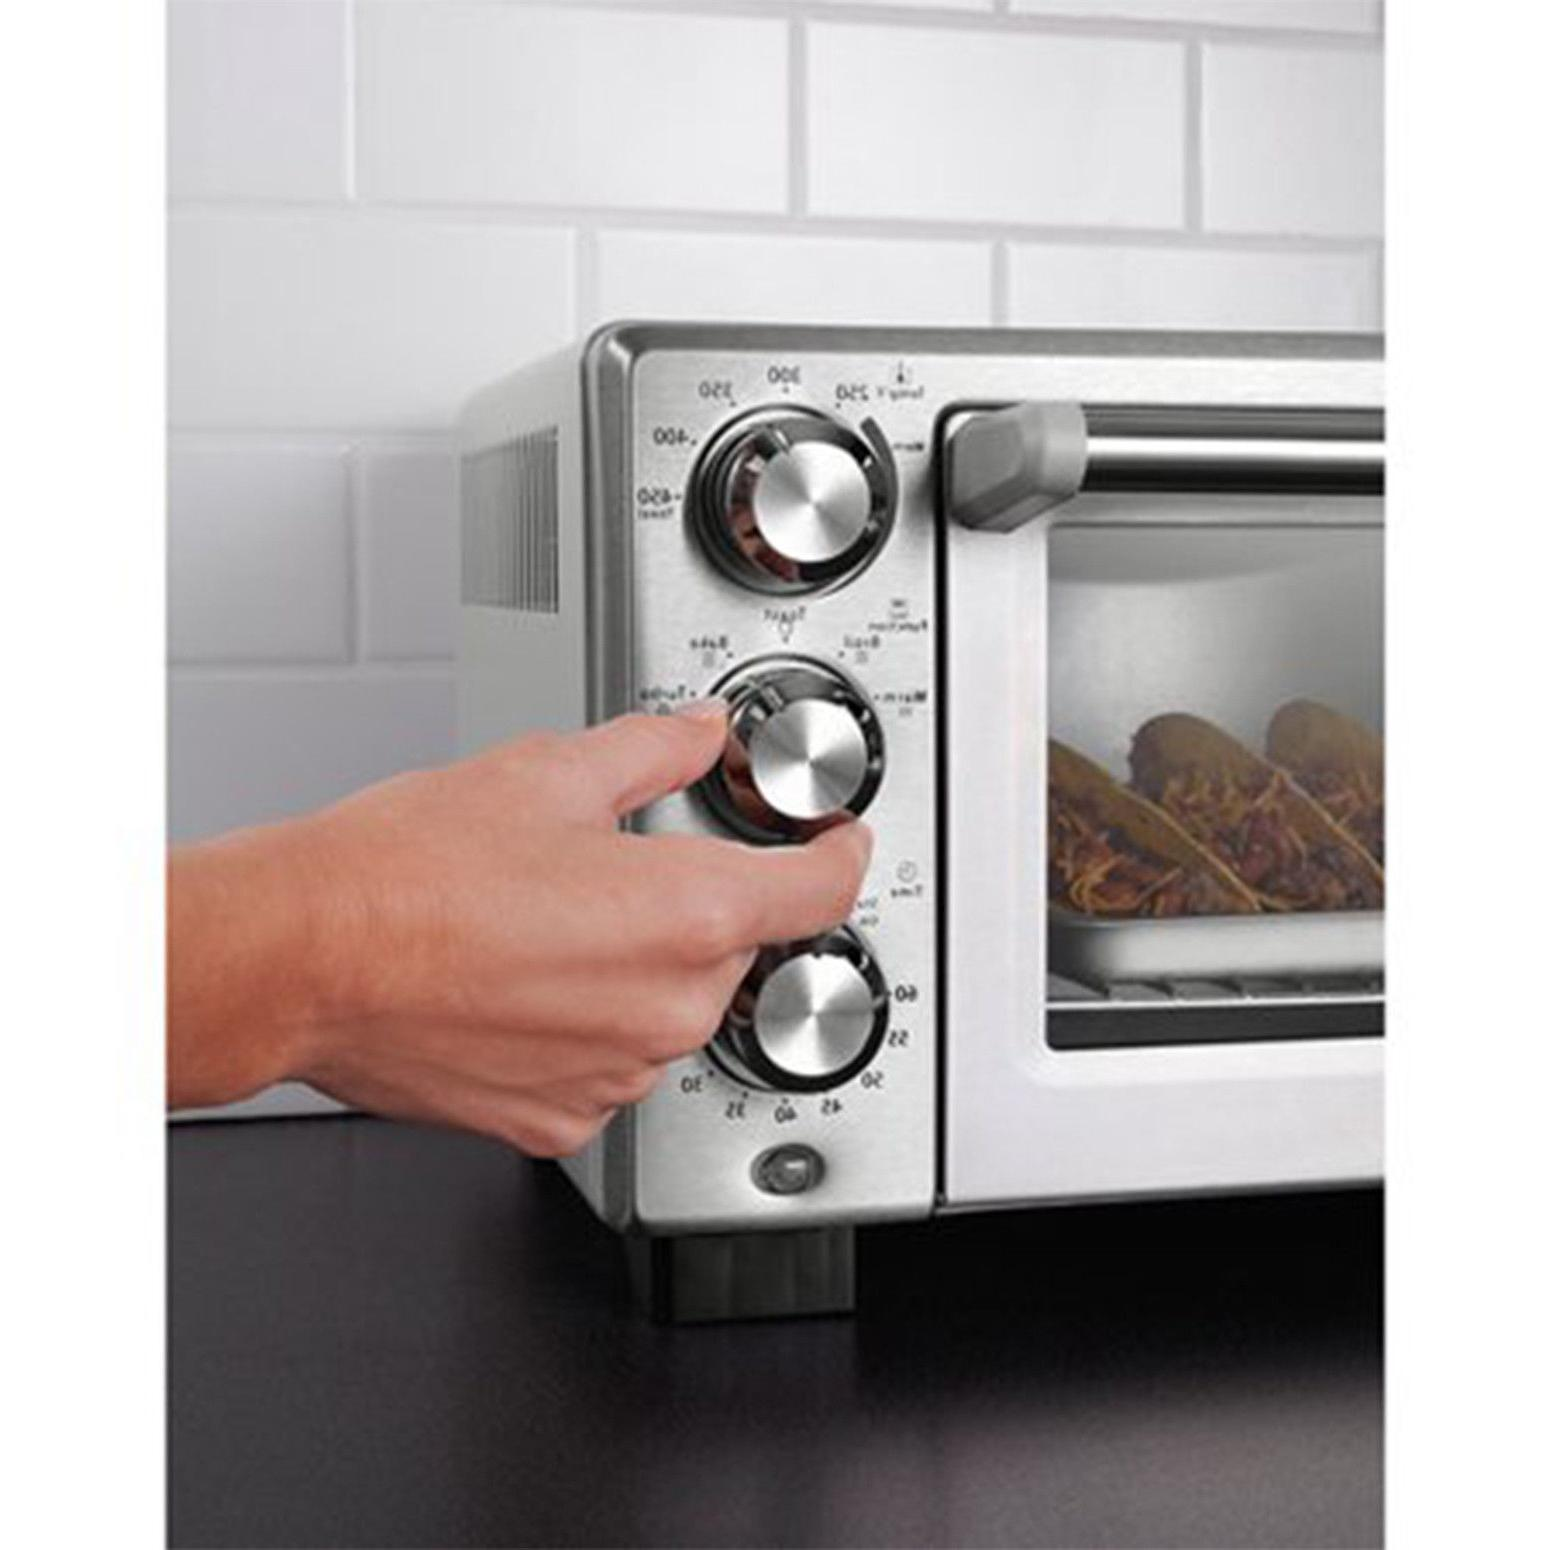 Convection Oven 6 Slice Brushed Stainless Family-Size Cook